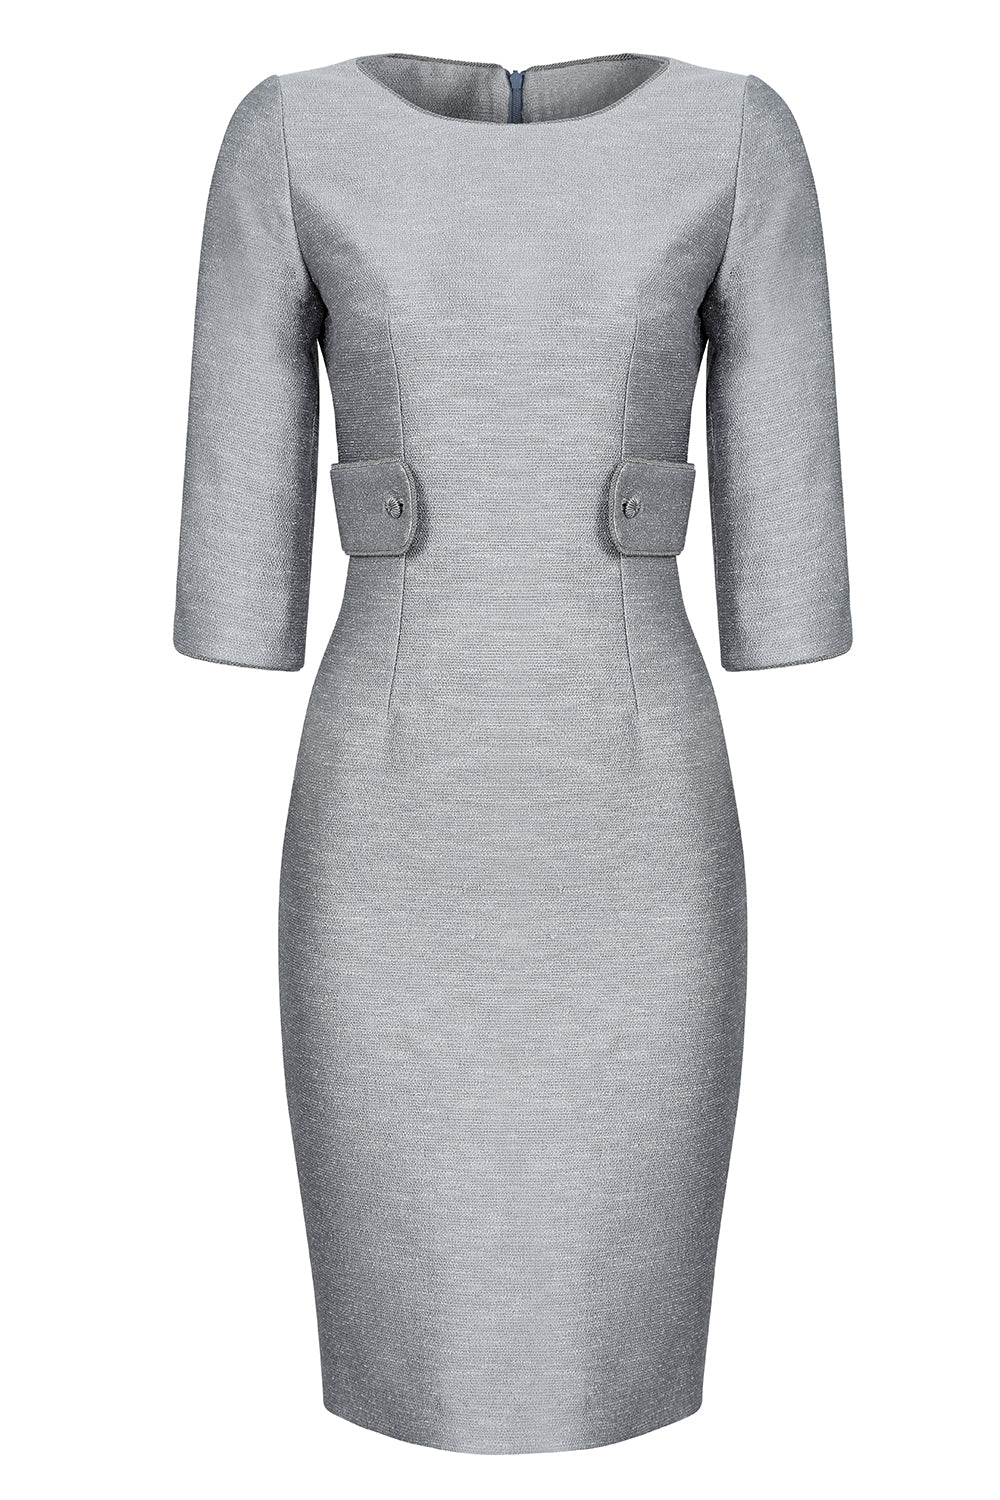 08776484cf4 silver mother of the bride dress or occasion wear